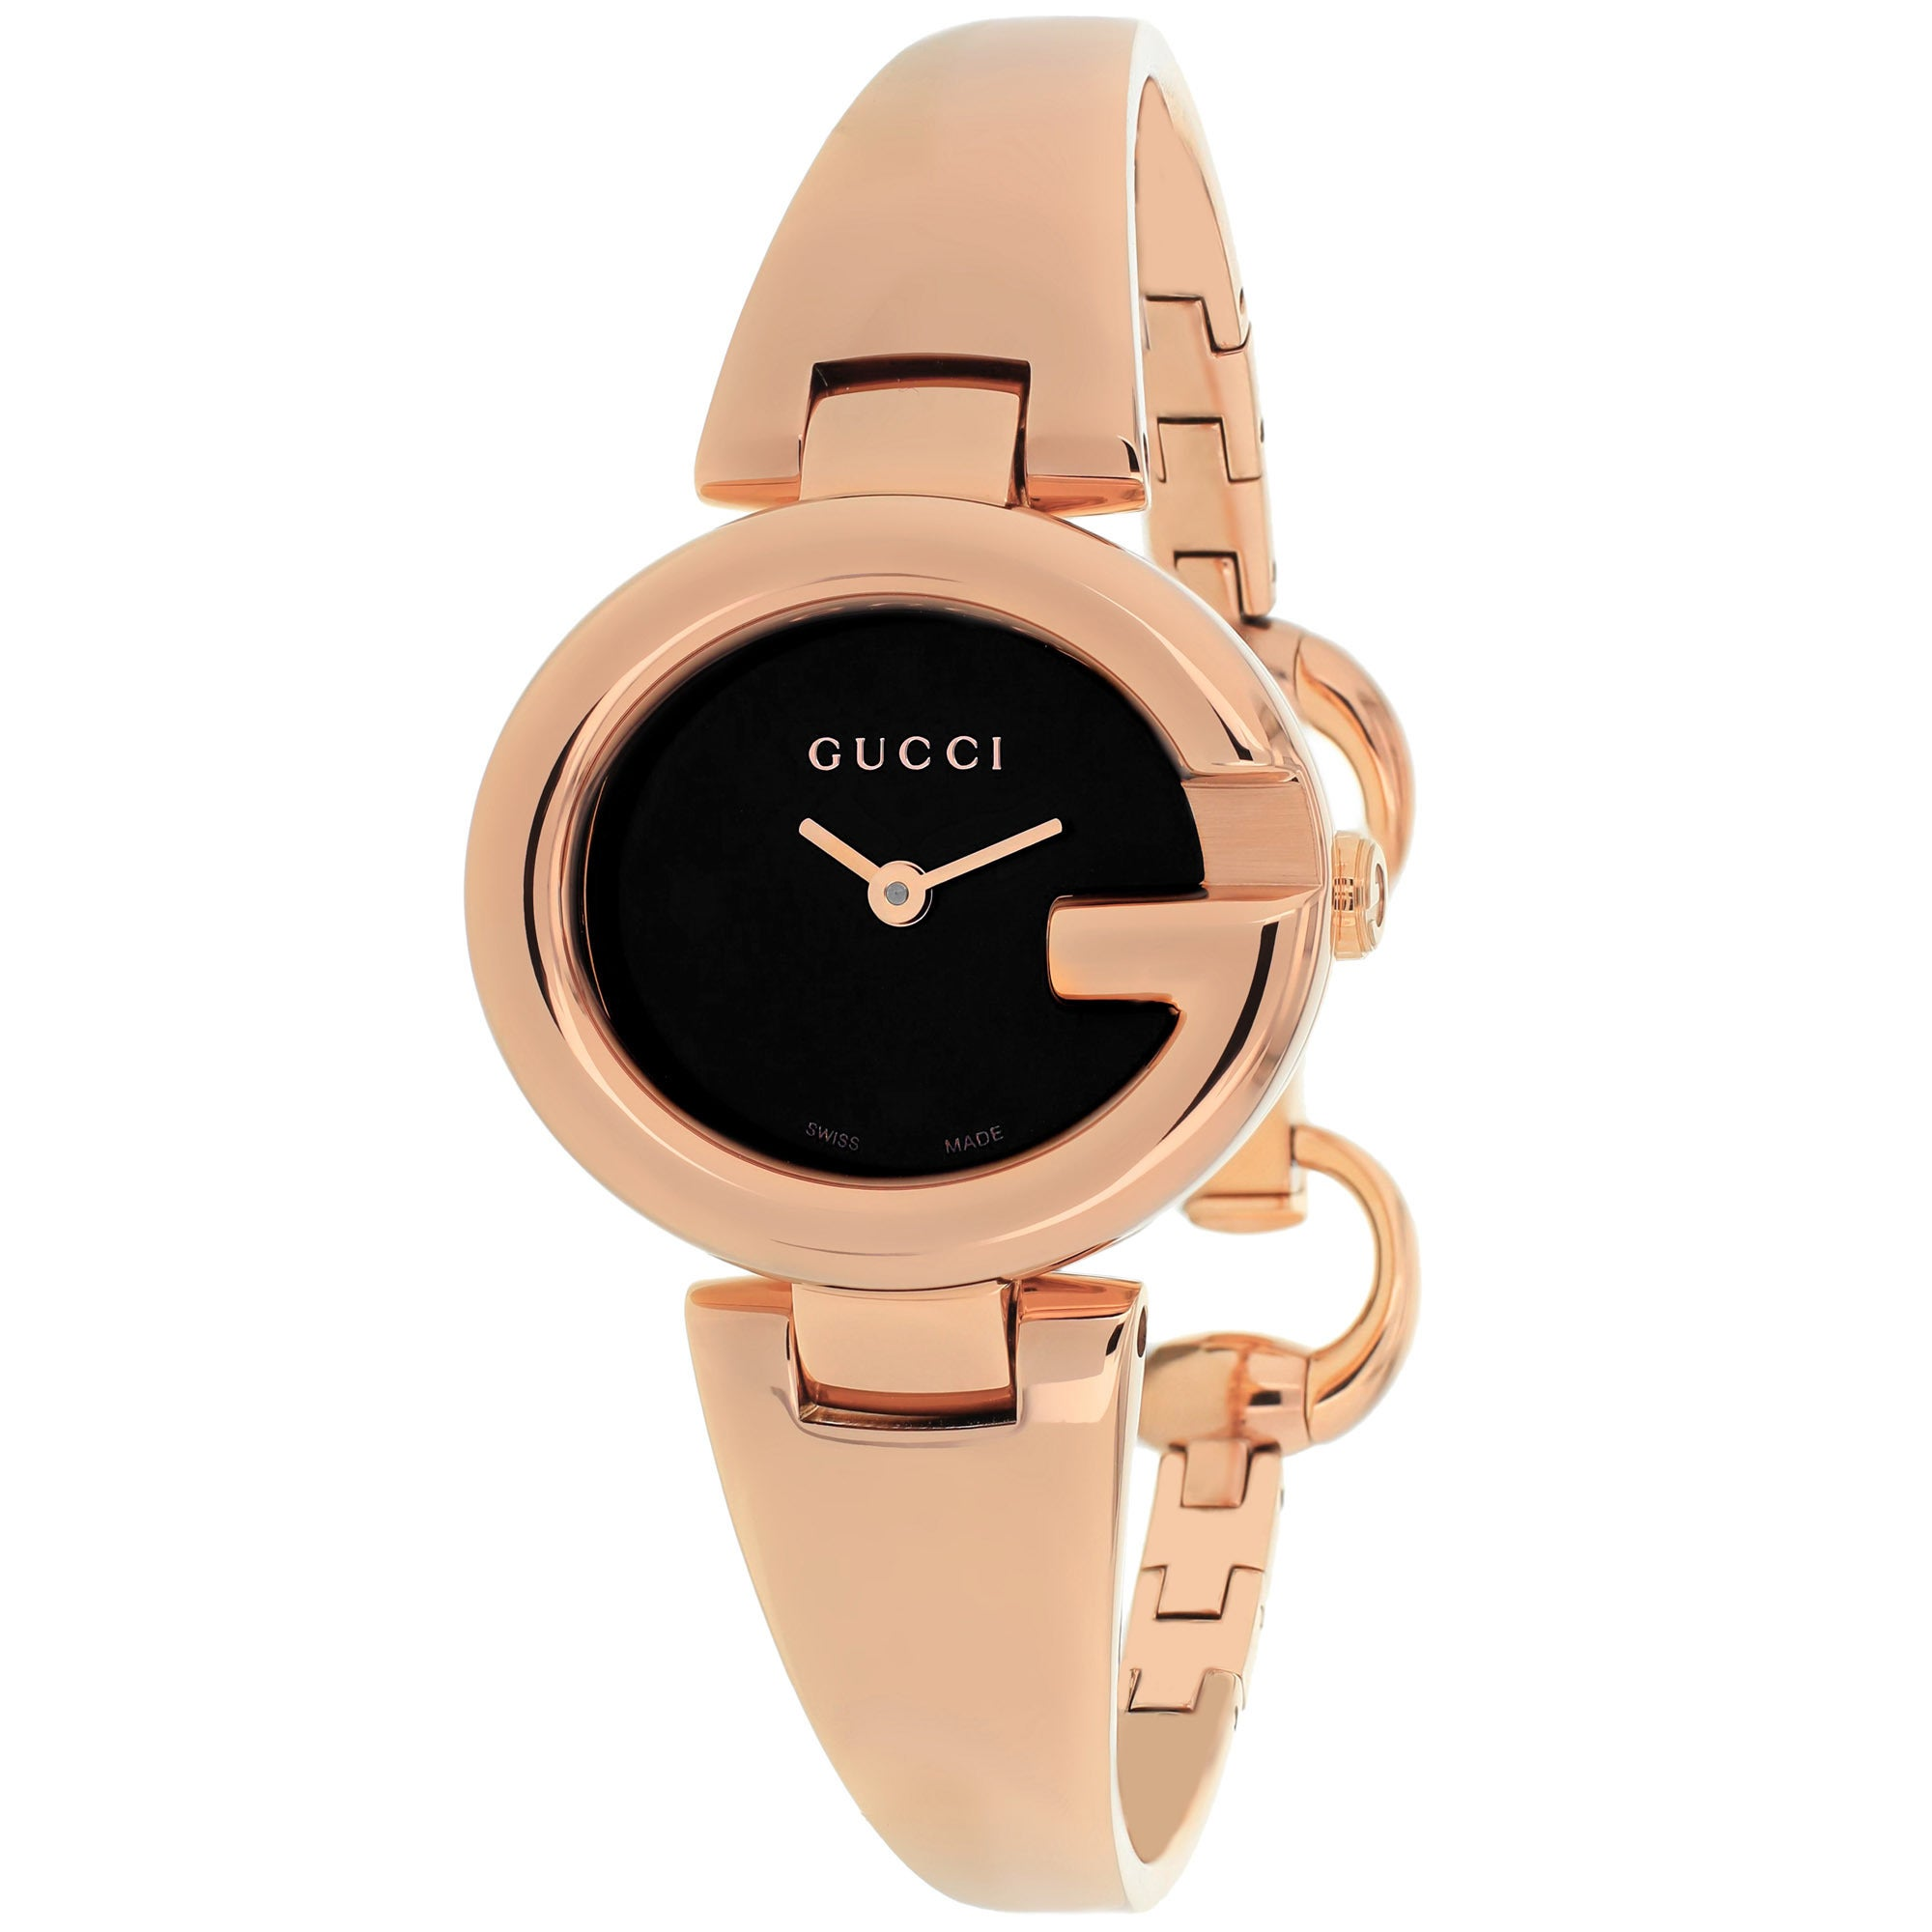 90a0ed356b0 Shop Gucci YA134509 Gucci  Guccissima  Swiss Quartz Rose Gold Stainless  Steel Bangle Watch - Free Shipping Today - Overstock - 9772562